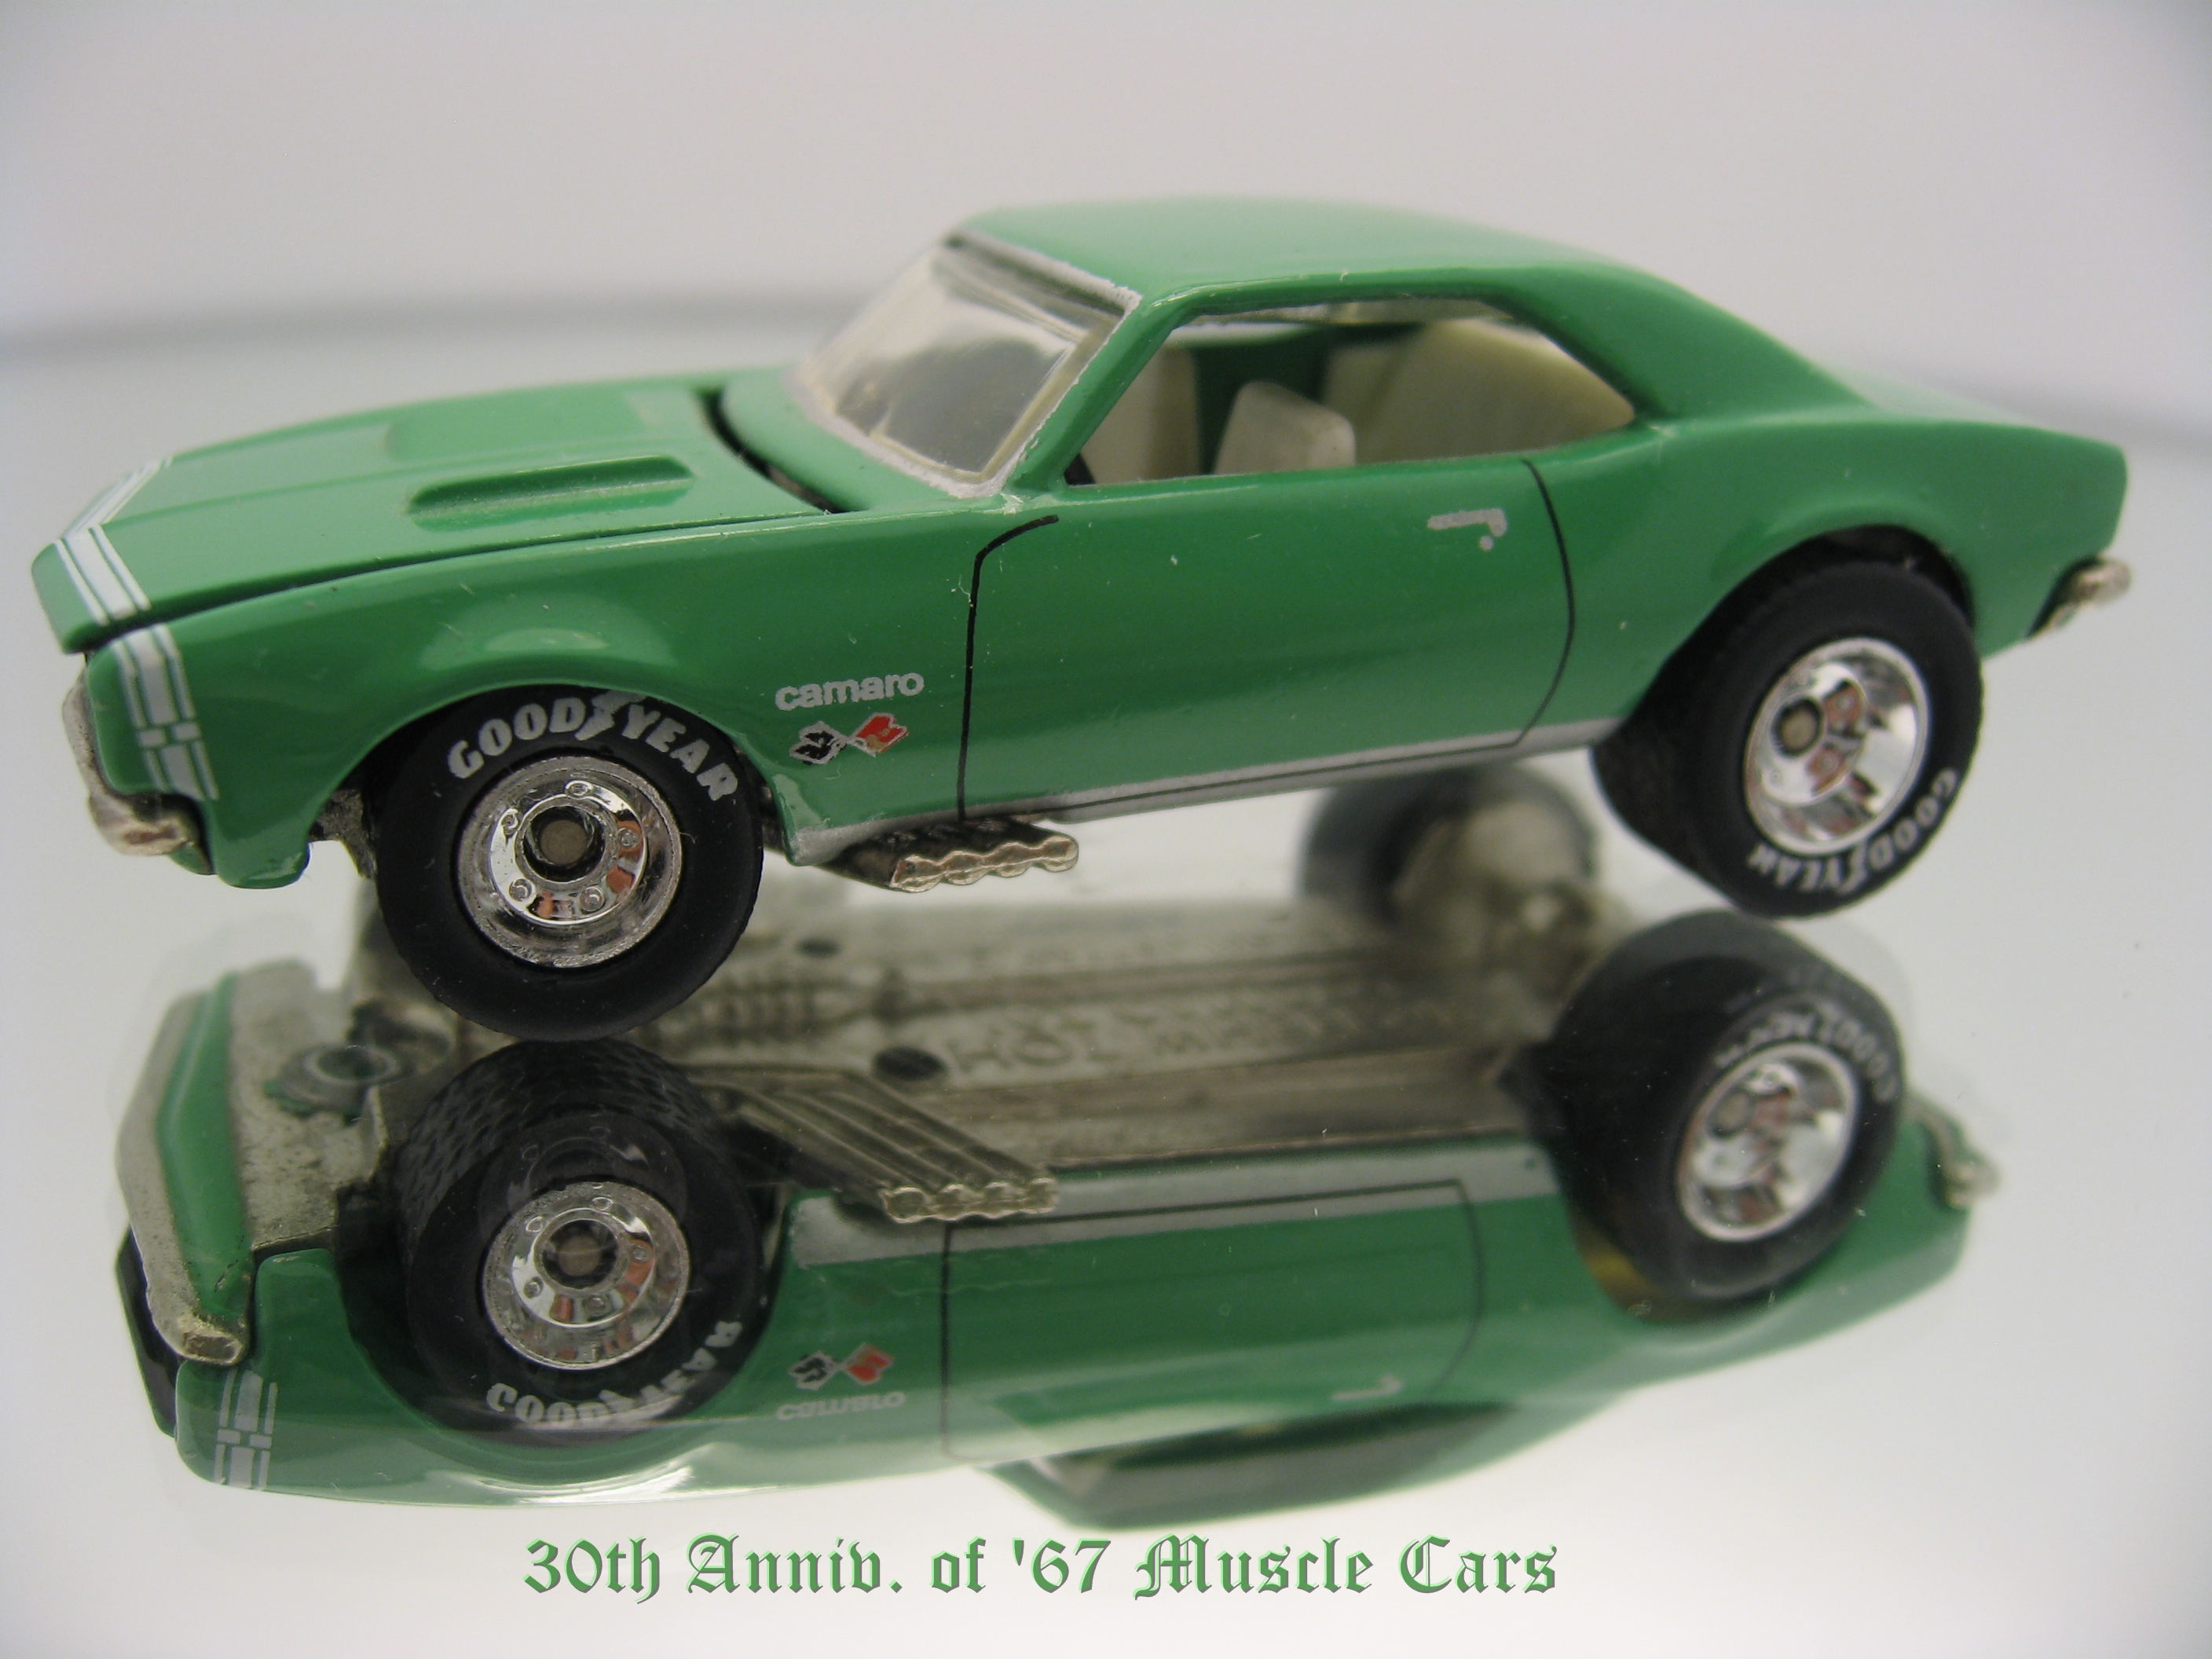 30th Anniversary of '67 Muscle Cars 3-Car Set